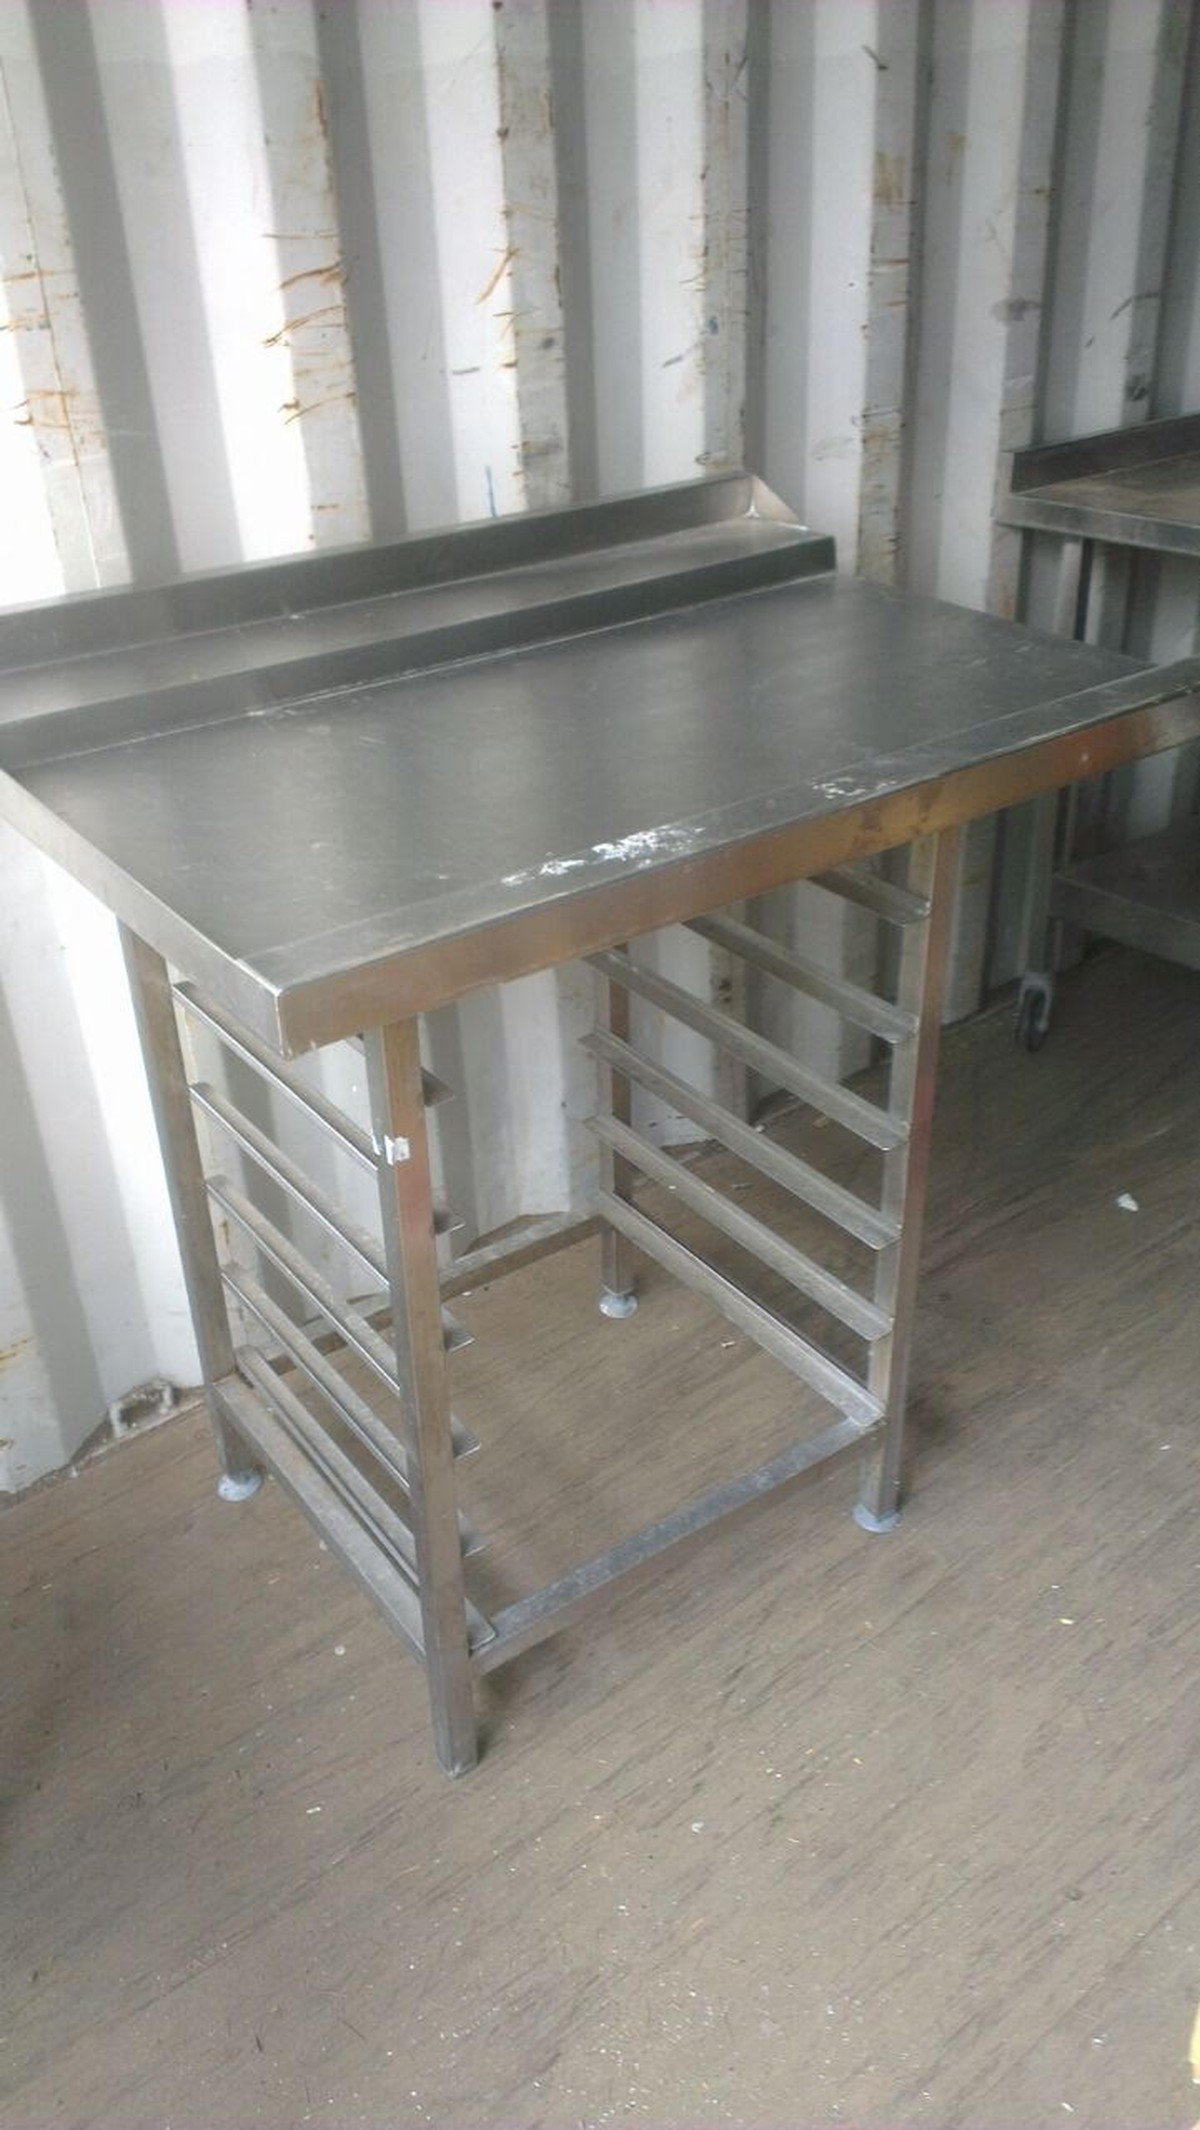 Table Top Dishwasher India : ... Trolleys And Tray Racks Stainless Steel Dishwasher Table In - London